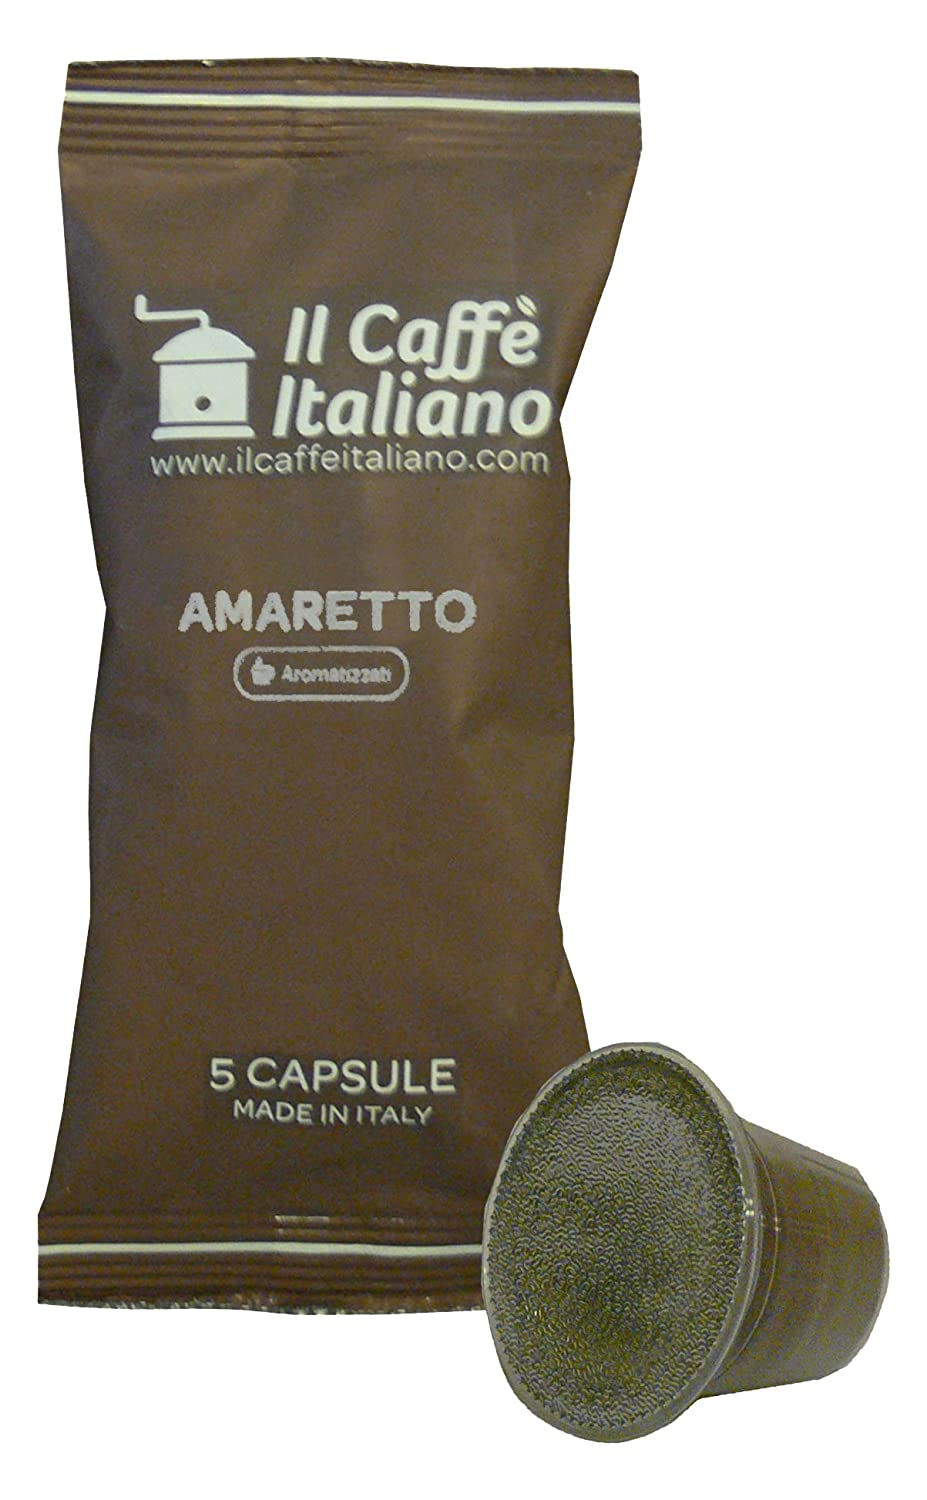 Caffè italiano 50 Nespresso Compatible Coffee Capsules - Coffee Flavoured Amaretto -50 X Coffee Capsules/Pods Espresso Compatible Nespresso - (10 Pack Of 5 ...